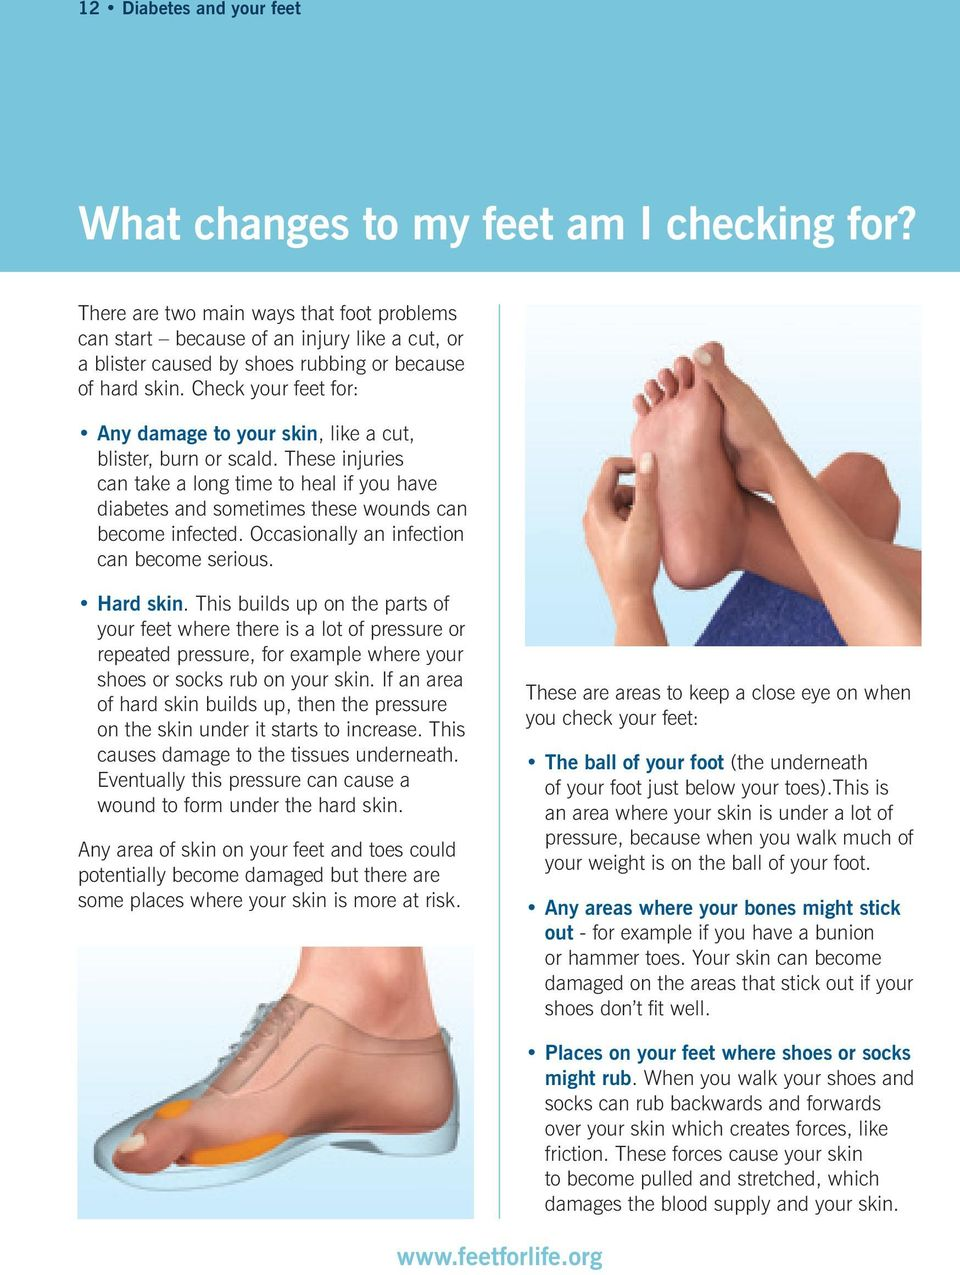 Check your feet for: Any damage to your skin, like a cut, blister, burn or scald. These injuries can take a long time to heal if you have diabetes and sometimes these wounds can become infected.